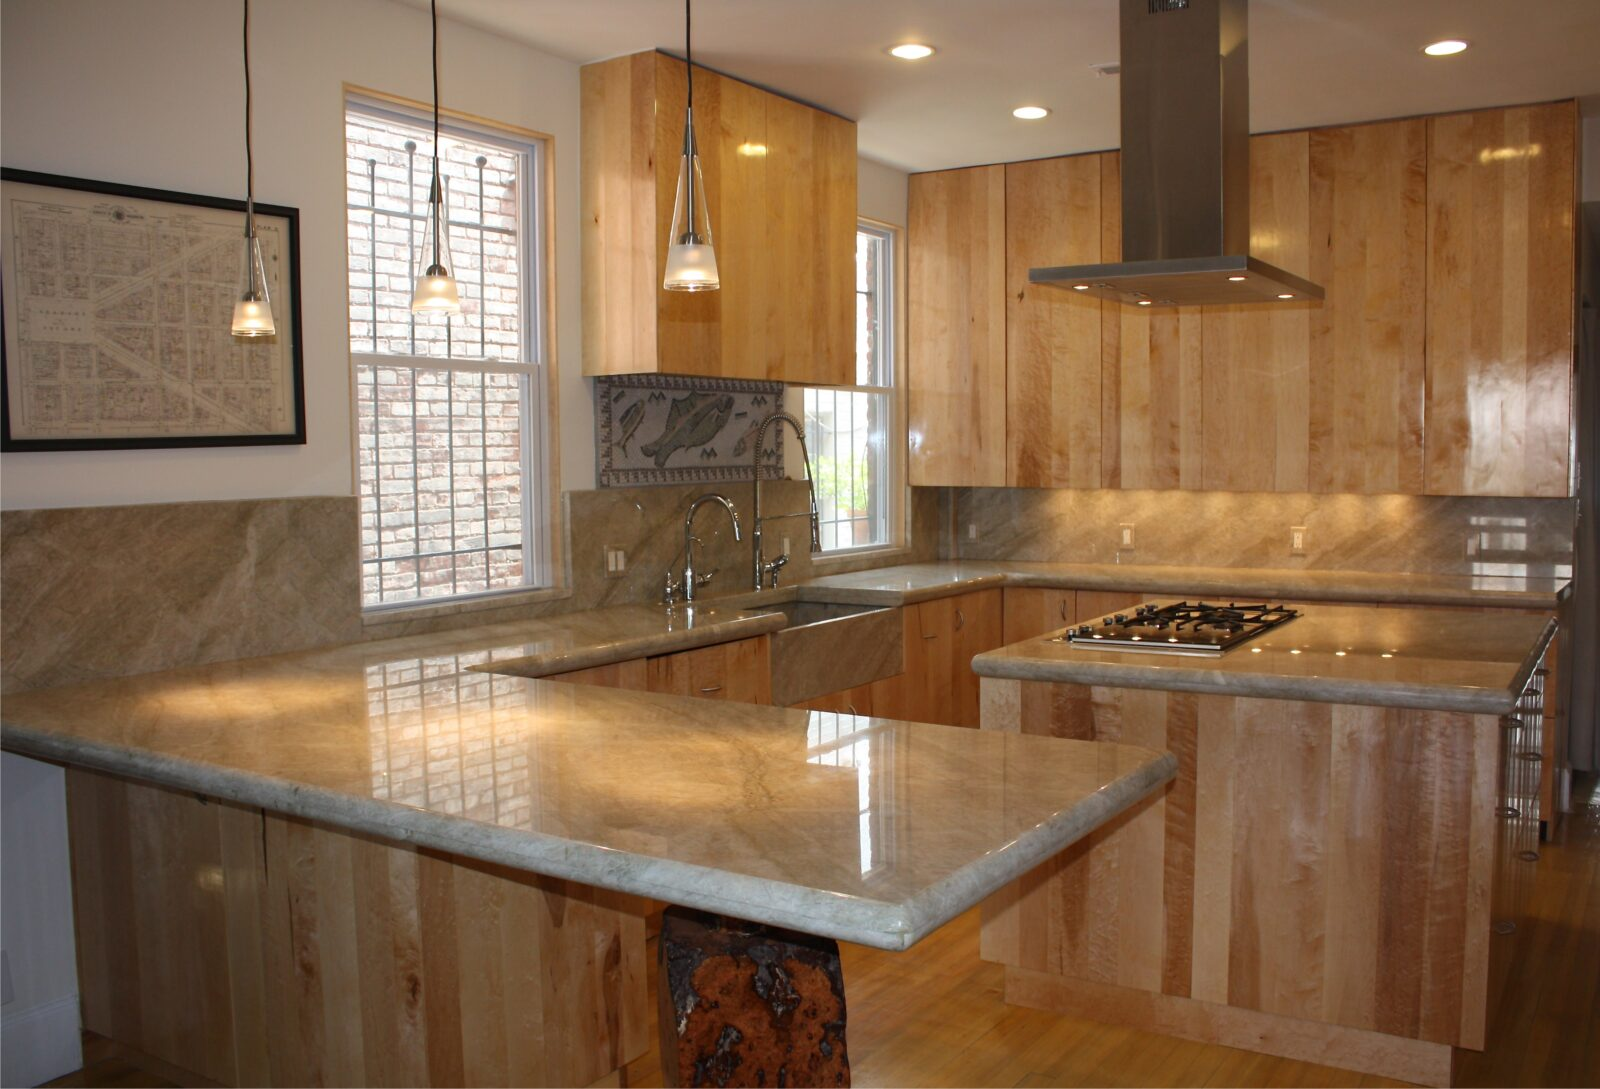 resurface decor countertop home modern affordable laminate kitchen countertops